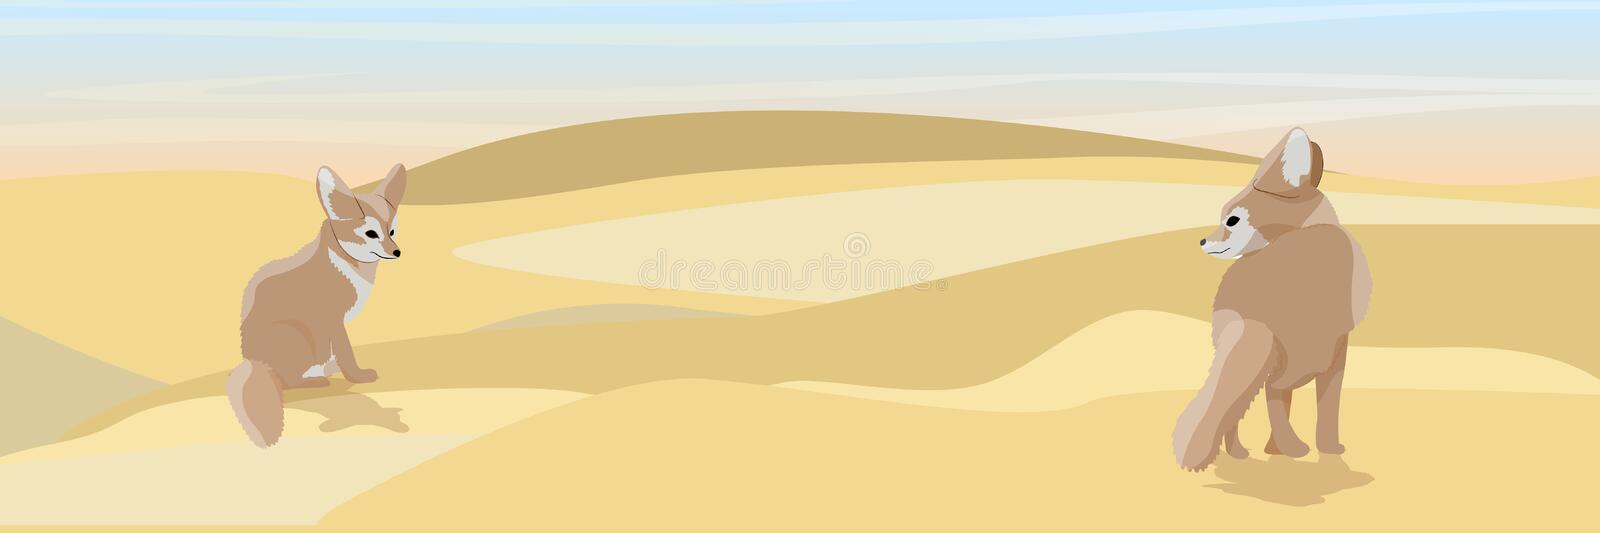 Two deserted fox fennec on the sand. Wildlife of North Africa. Desert with dunes from yellow sand. Landscapes of Africa and Australia. Sahara Realistic Vector stock illustration